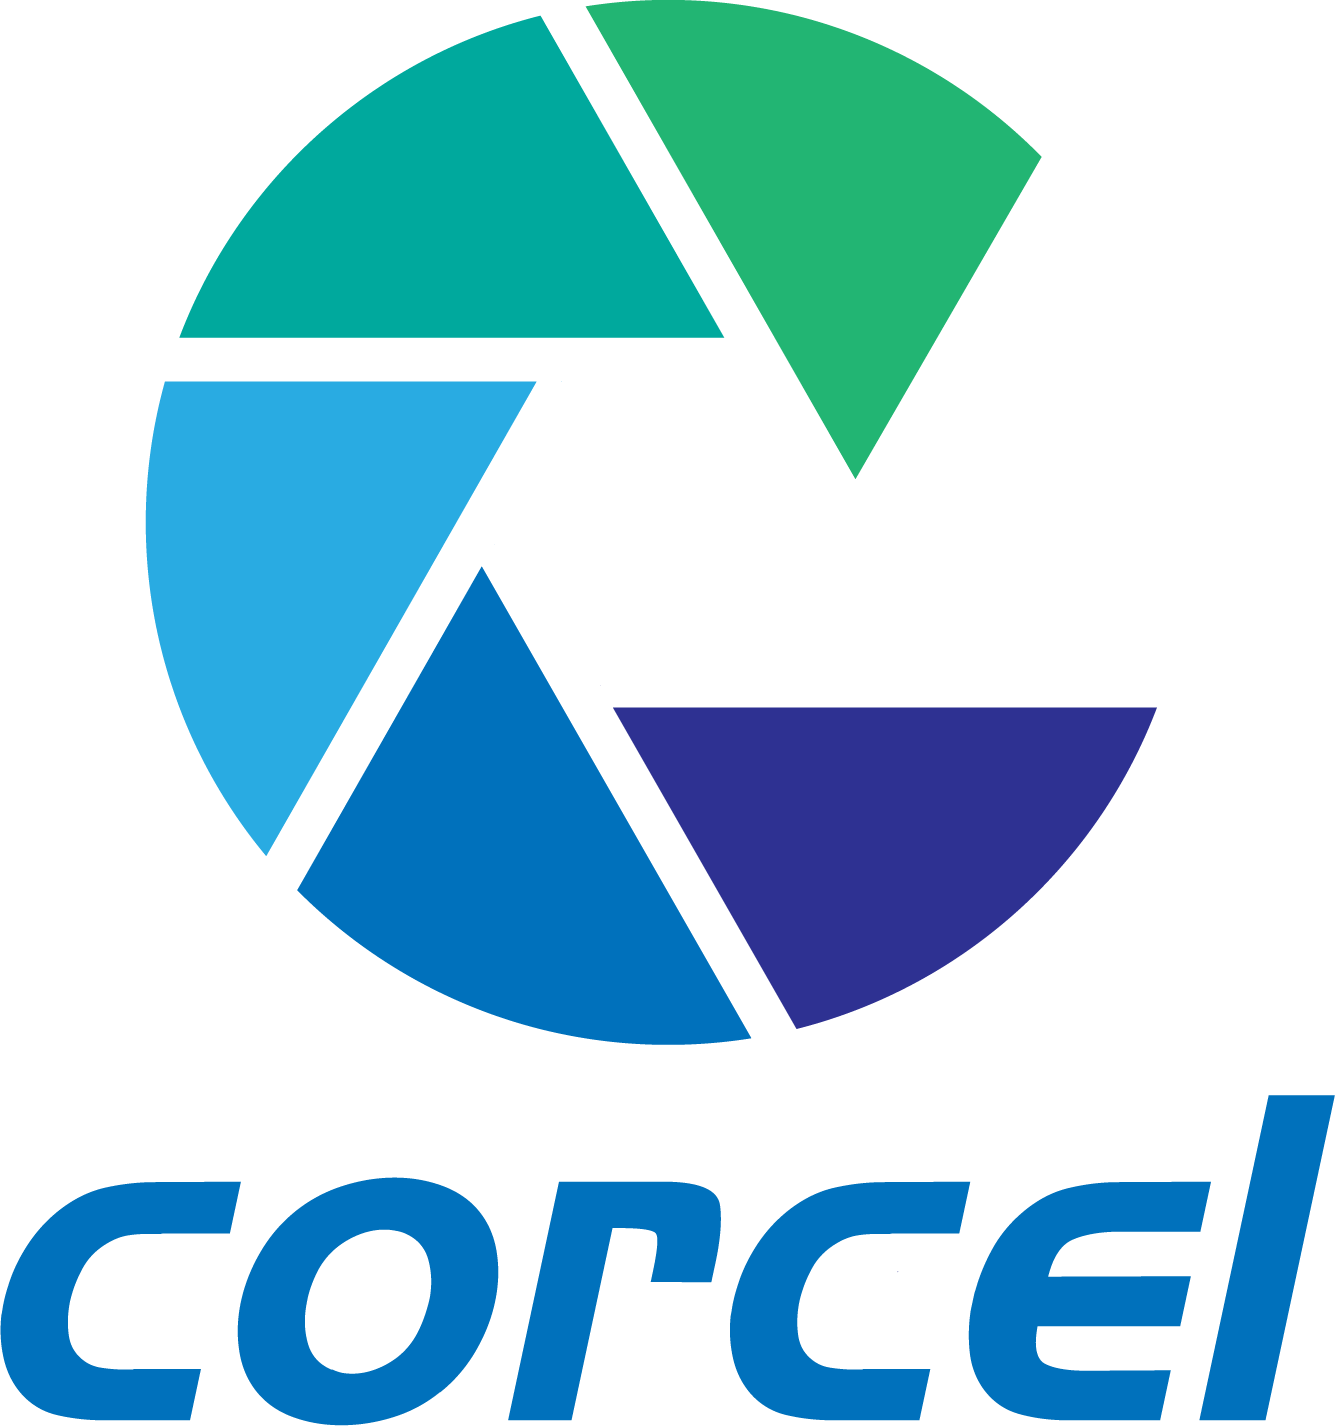 Corcel PHP